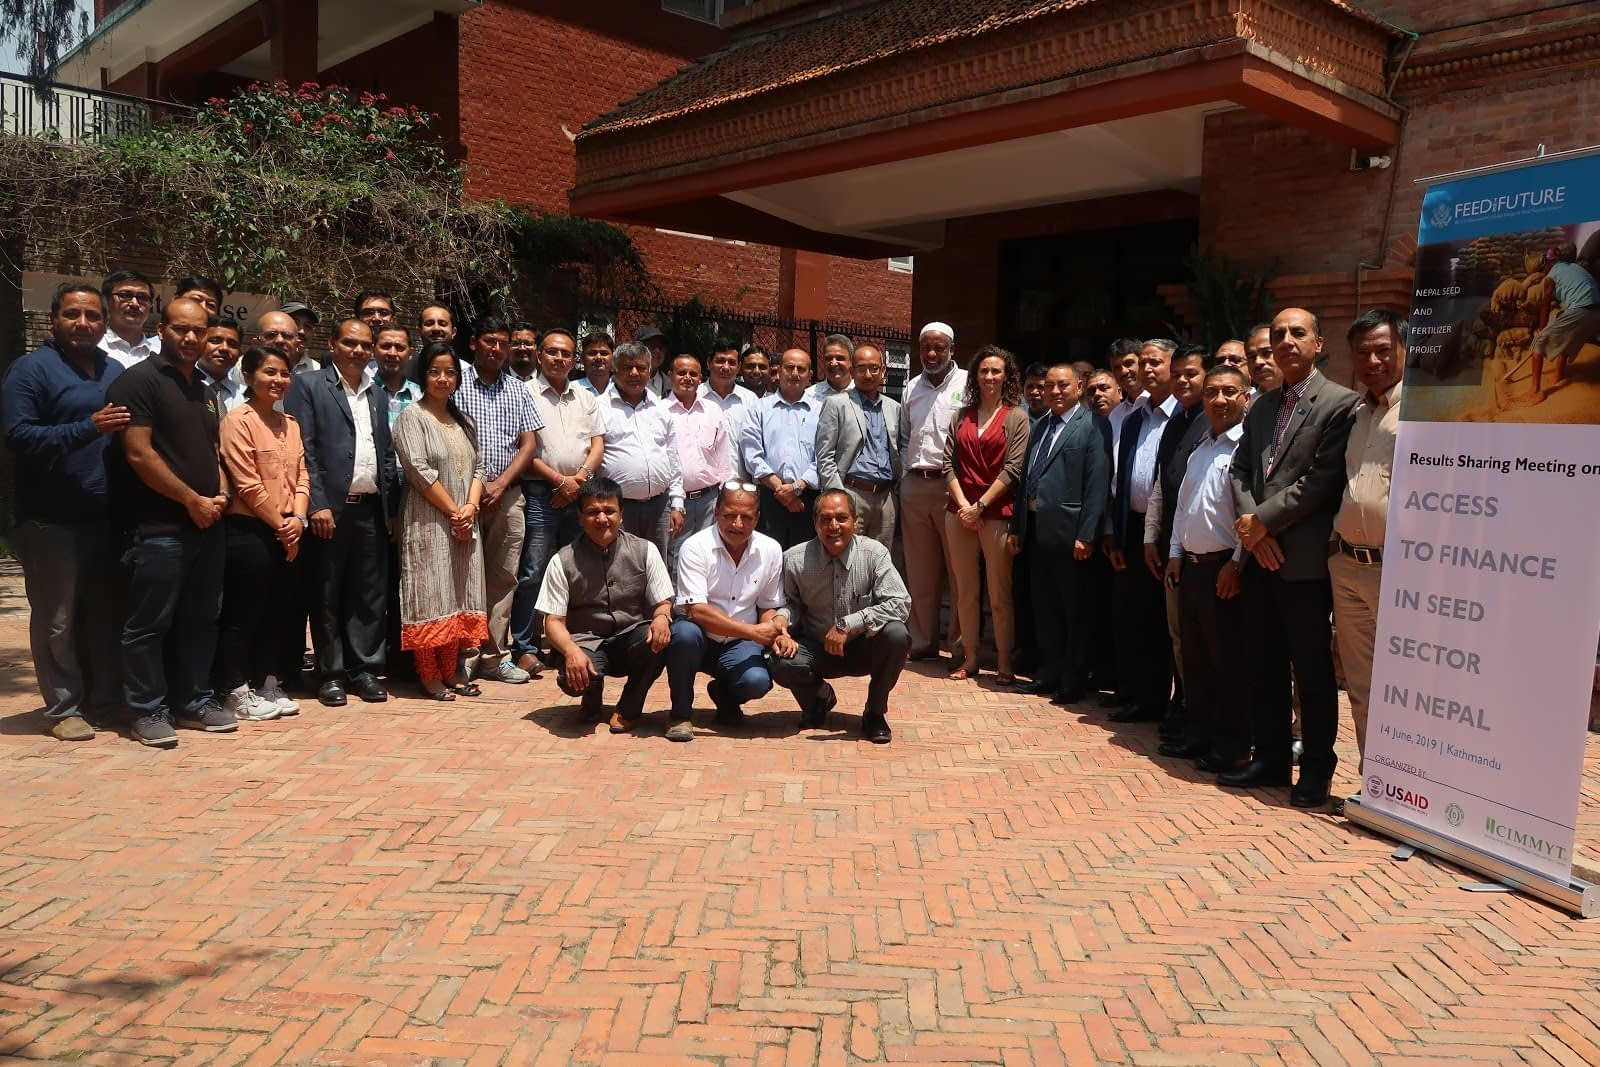 Participants of the results sharing meeting on Access to Finance in Seed Sector in Nepal. (Photo: Bandana Pradhan/CIMMYT)